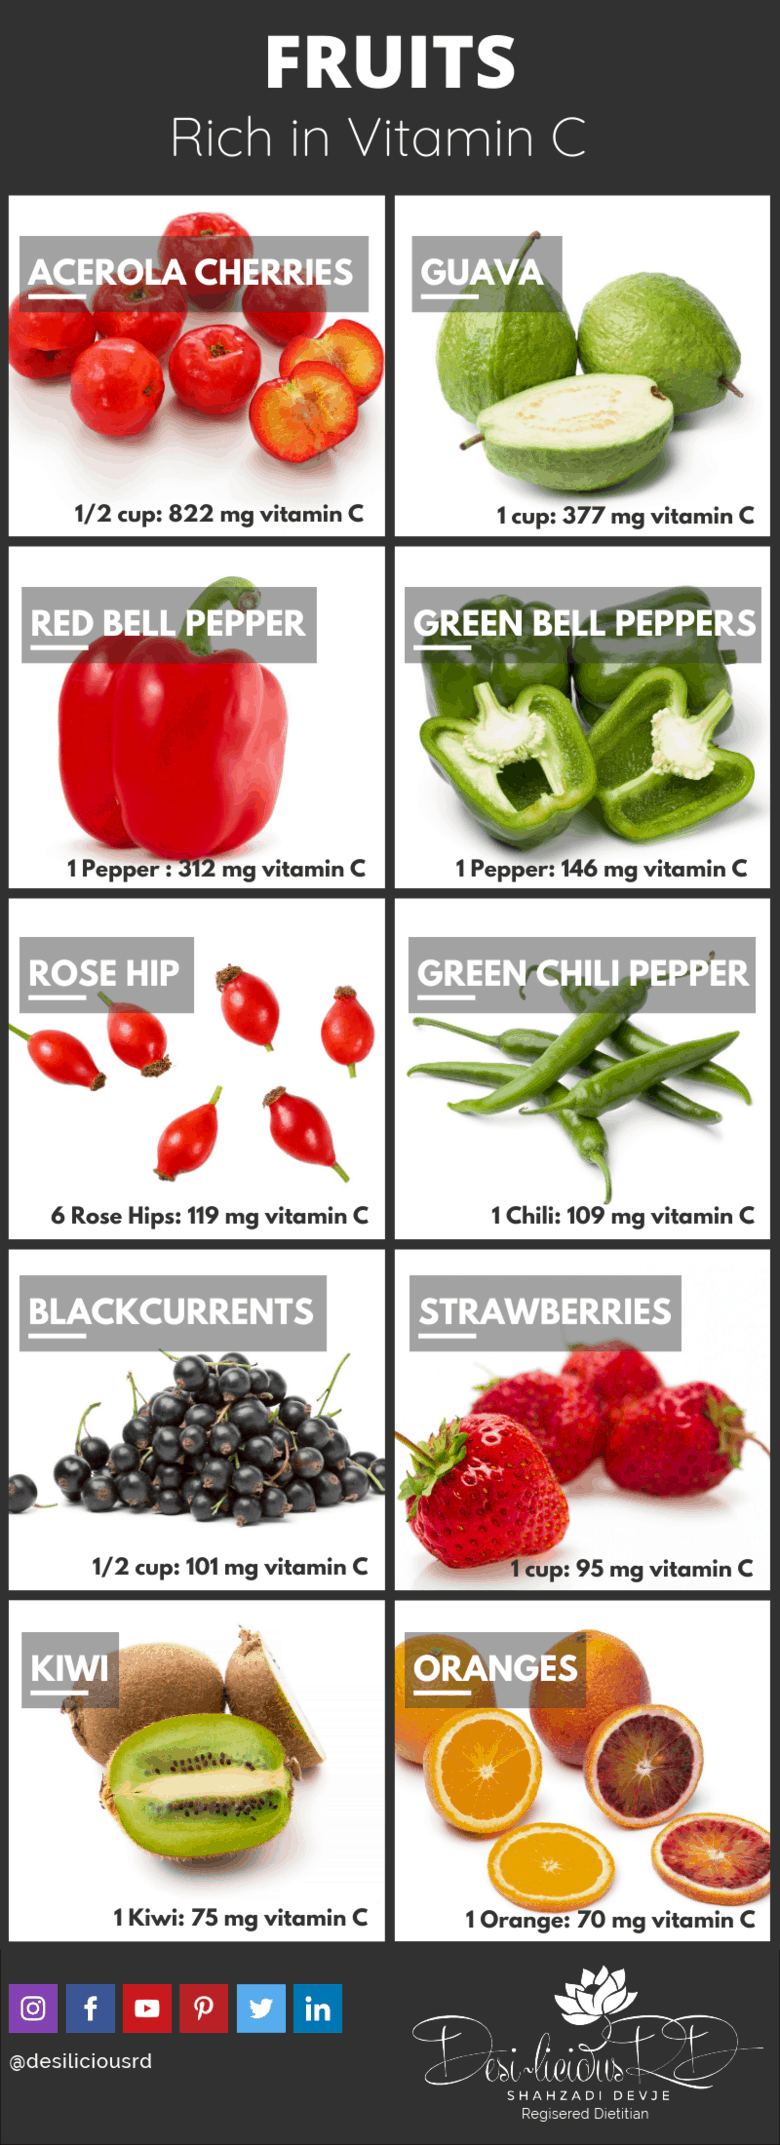 infographic listing fruits rich in vitamin c to help boost immunity